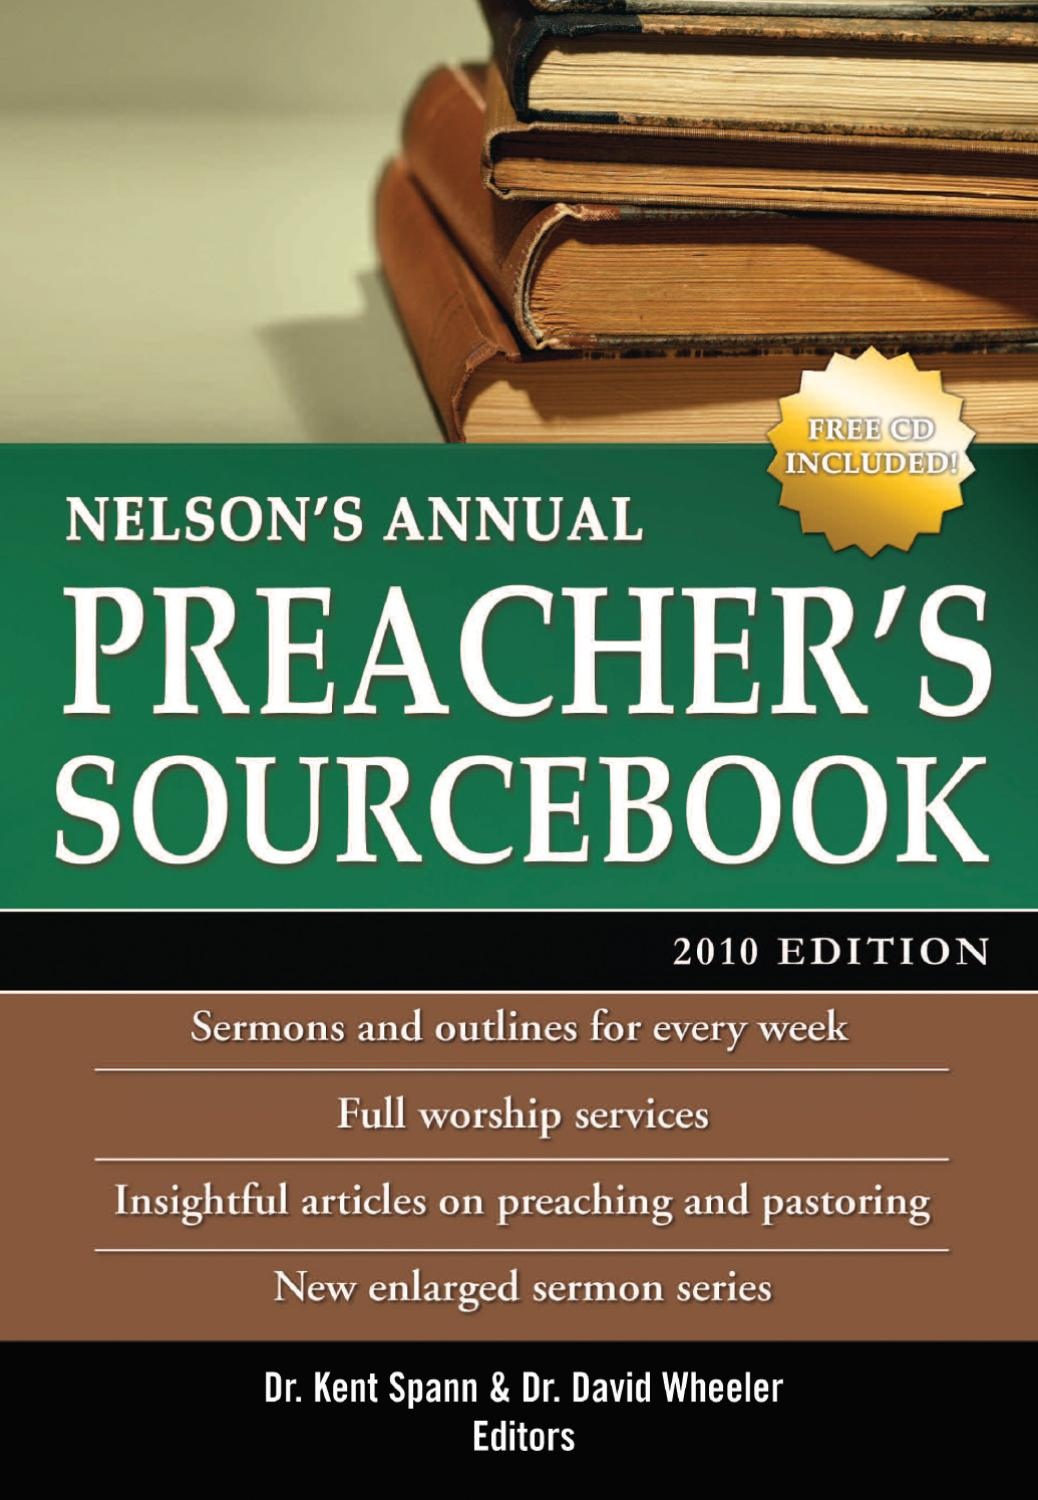 Nelson's Annual Preacher's Sourcebook, 2010 Edition by